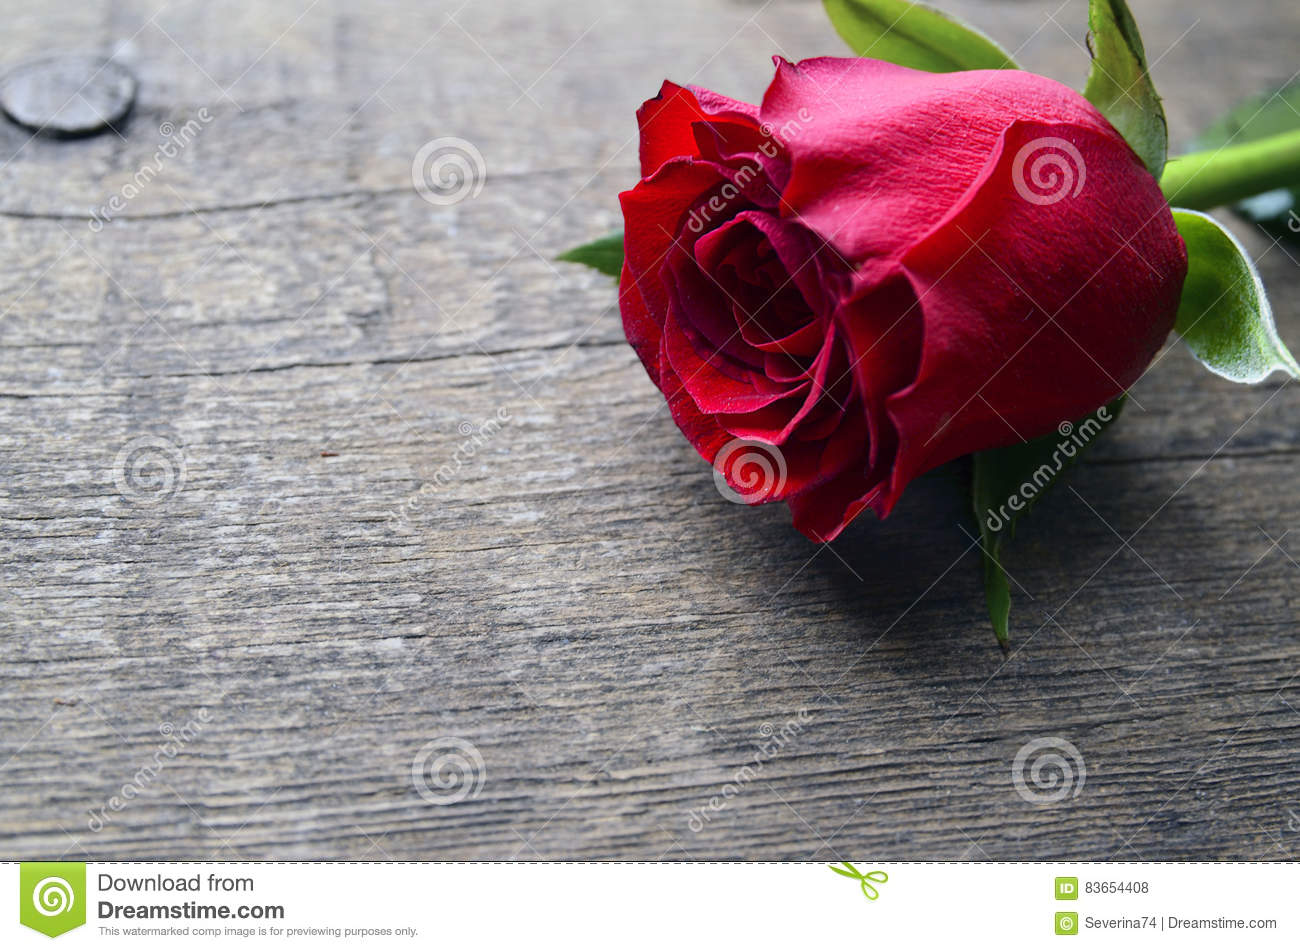 Rose on old wooden background for Valentine`s Day with copy space.Valentine rose.